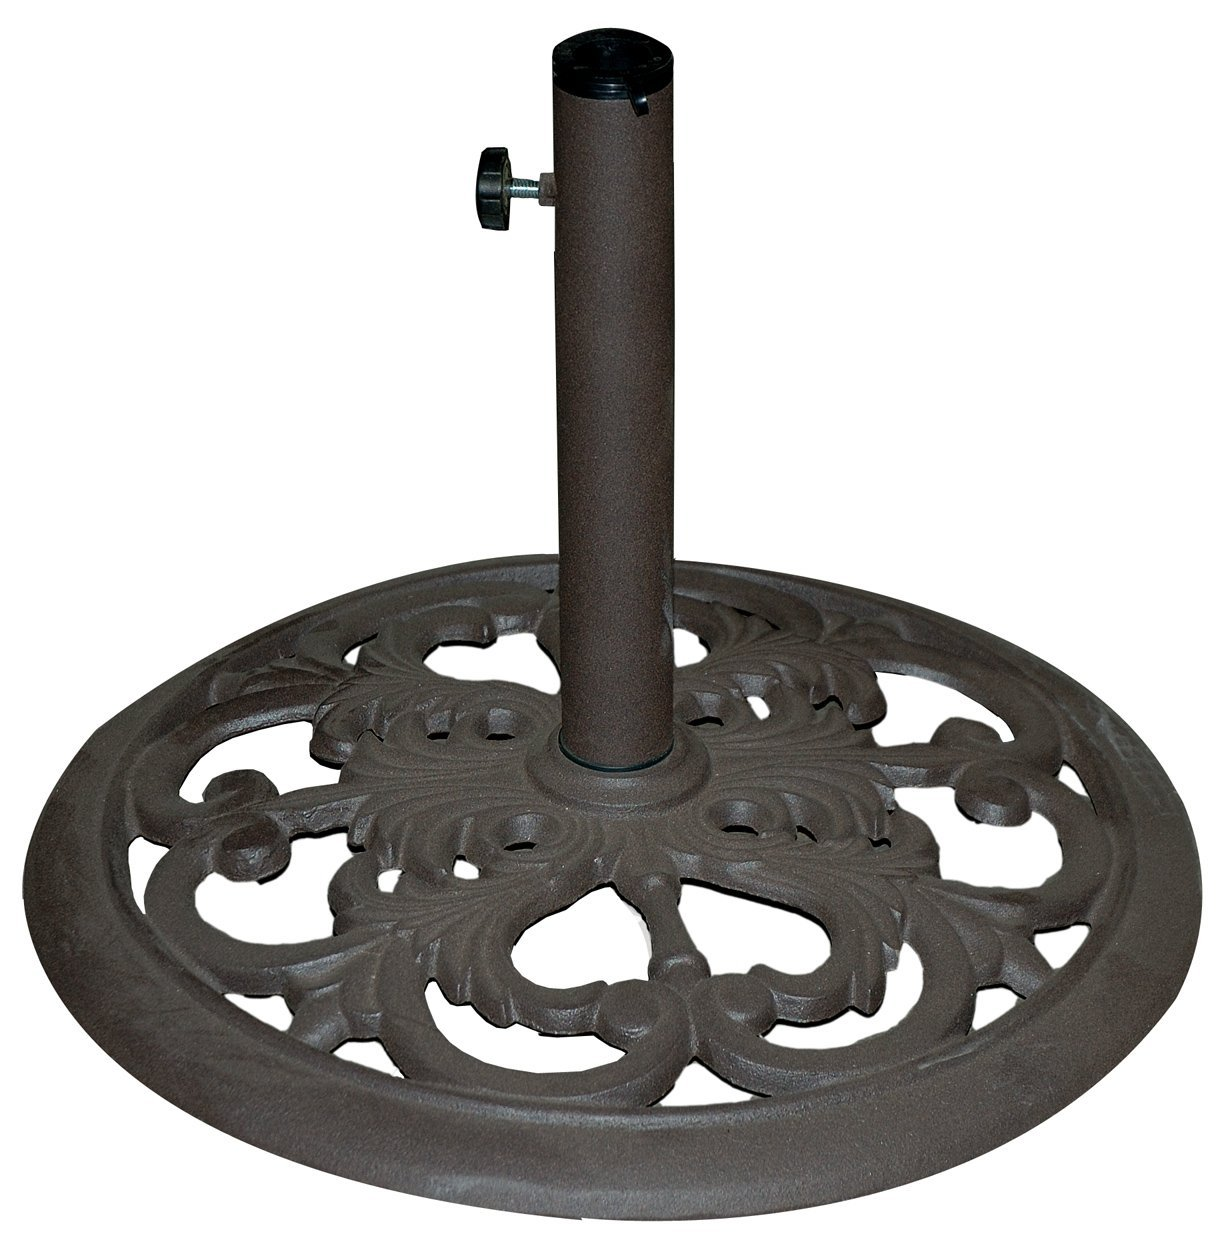 Creative Patio Umbrella Stand